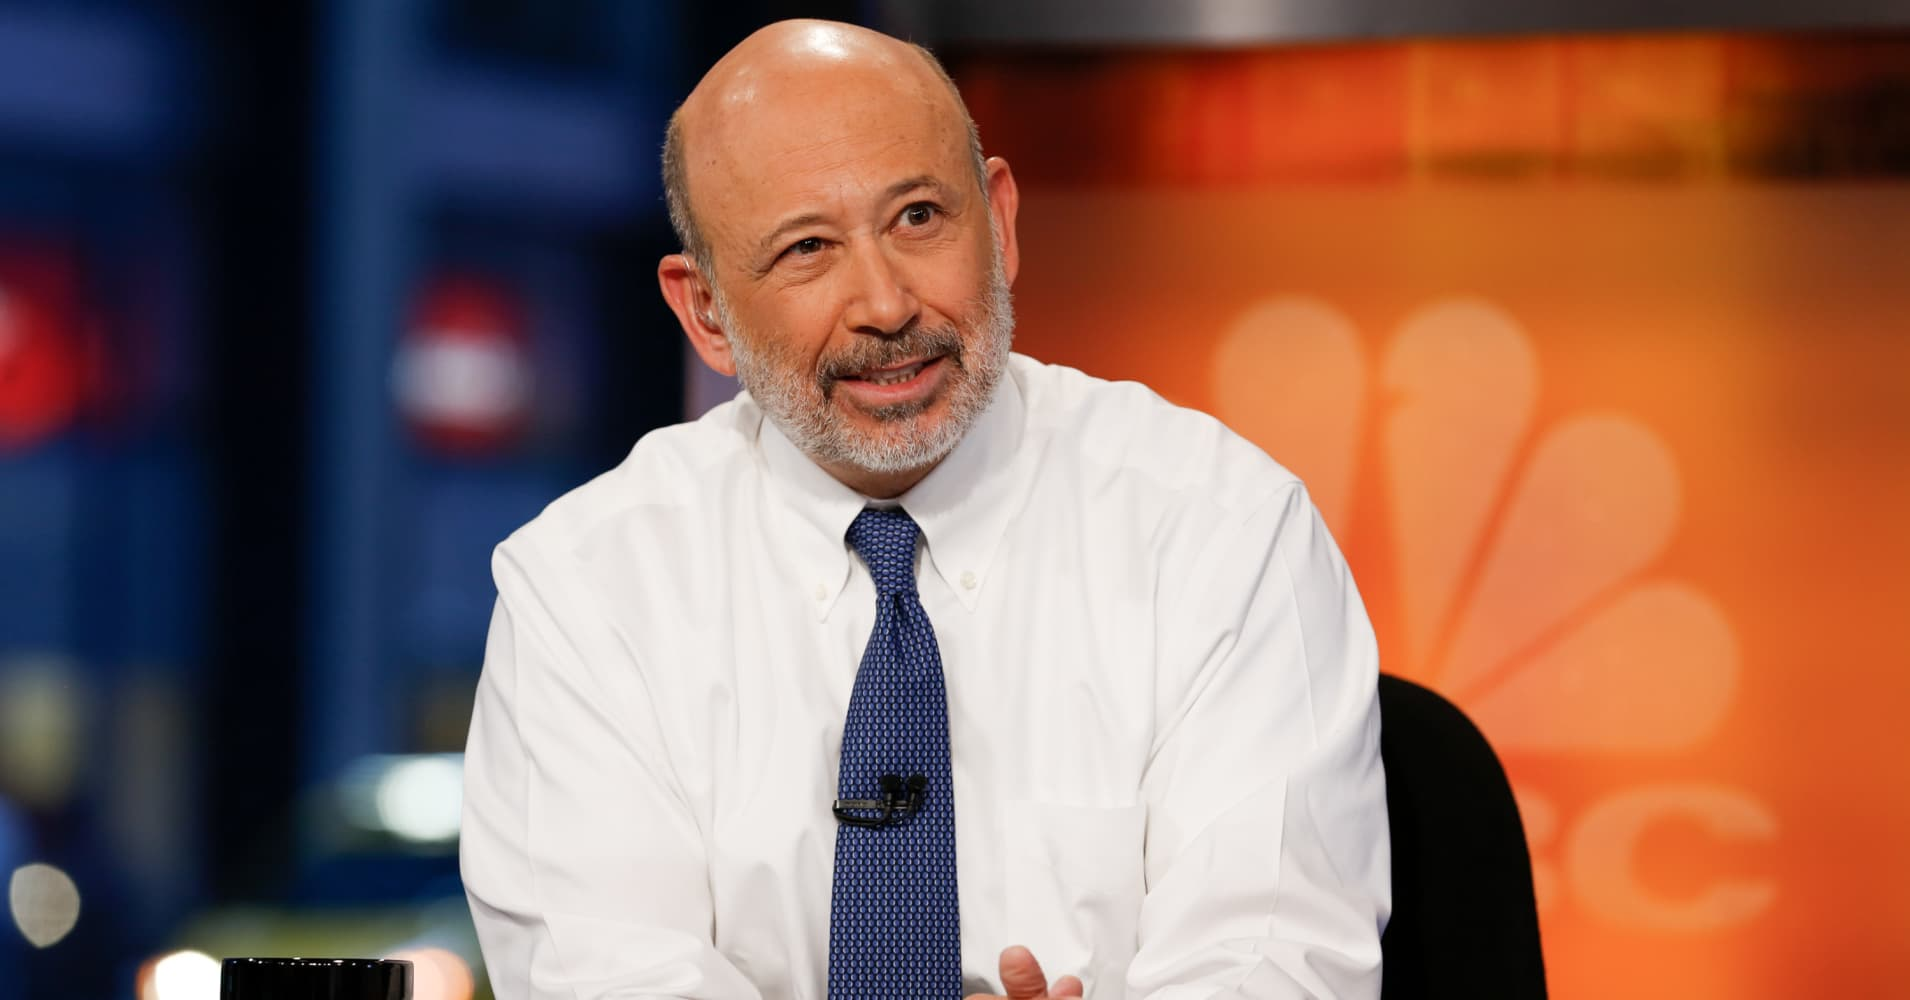 Lloyd Blankfein, Chairman and CEO of Goldman Sachs.